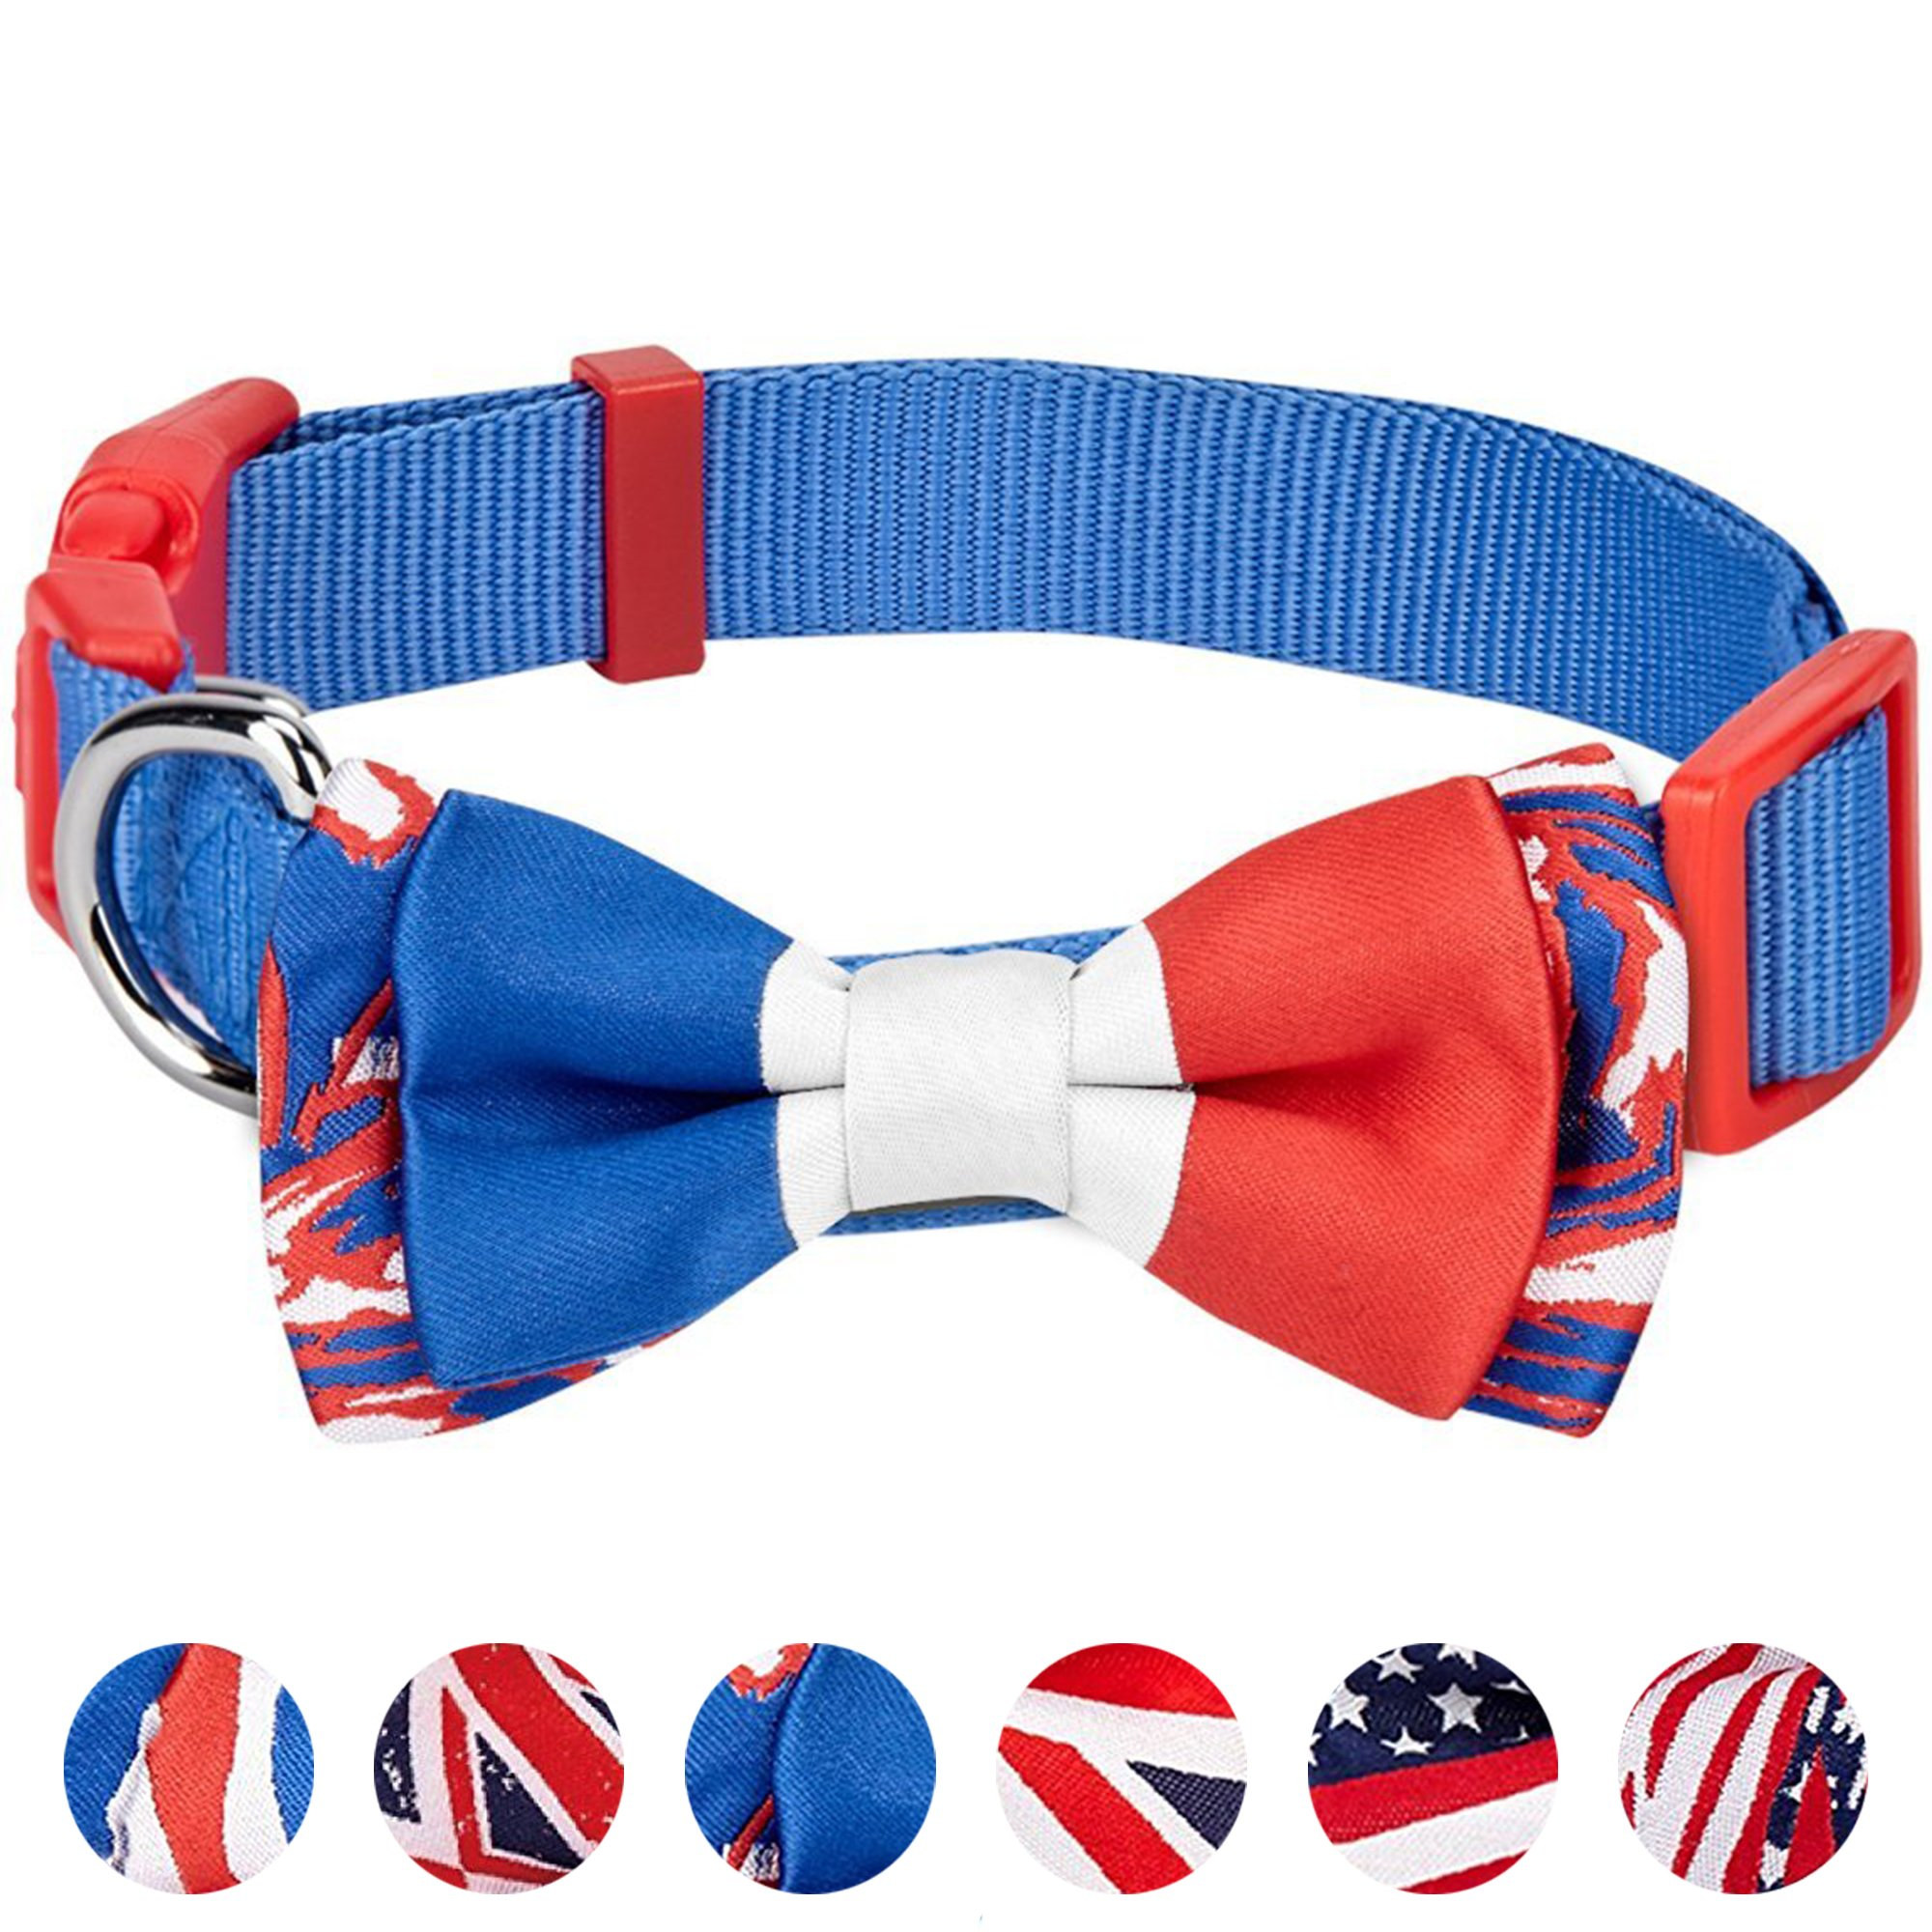 Blueberry Pet 6 Designs Pack of 1 National Pride Handmade France Flag w/Jacquard Weave Fabric Detachable Bow Tie Dog Collar in Blue, Medium, Neck 14.5''-20'', Adjustable Collars for Dogs